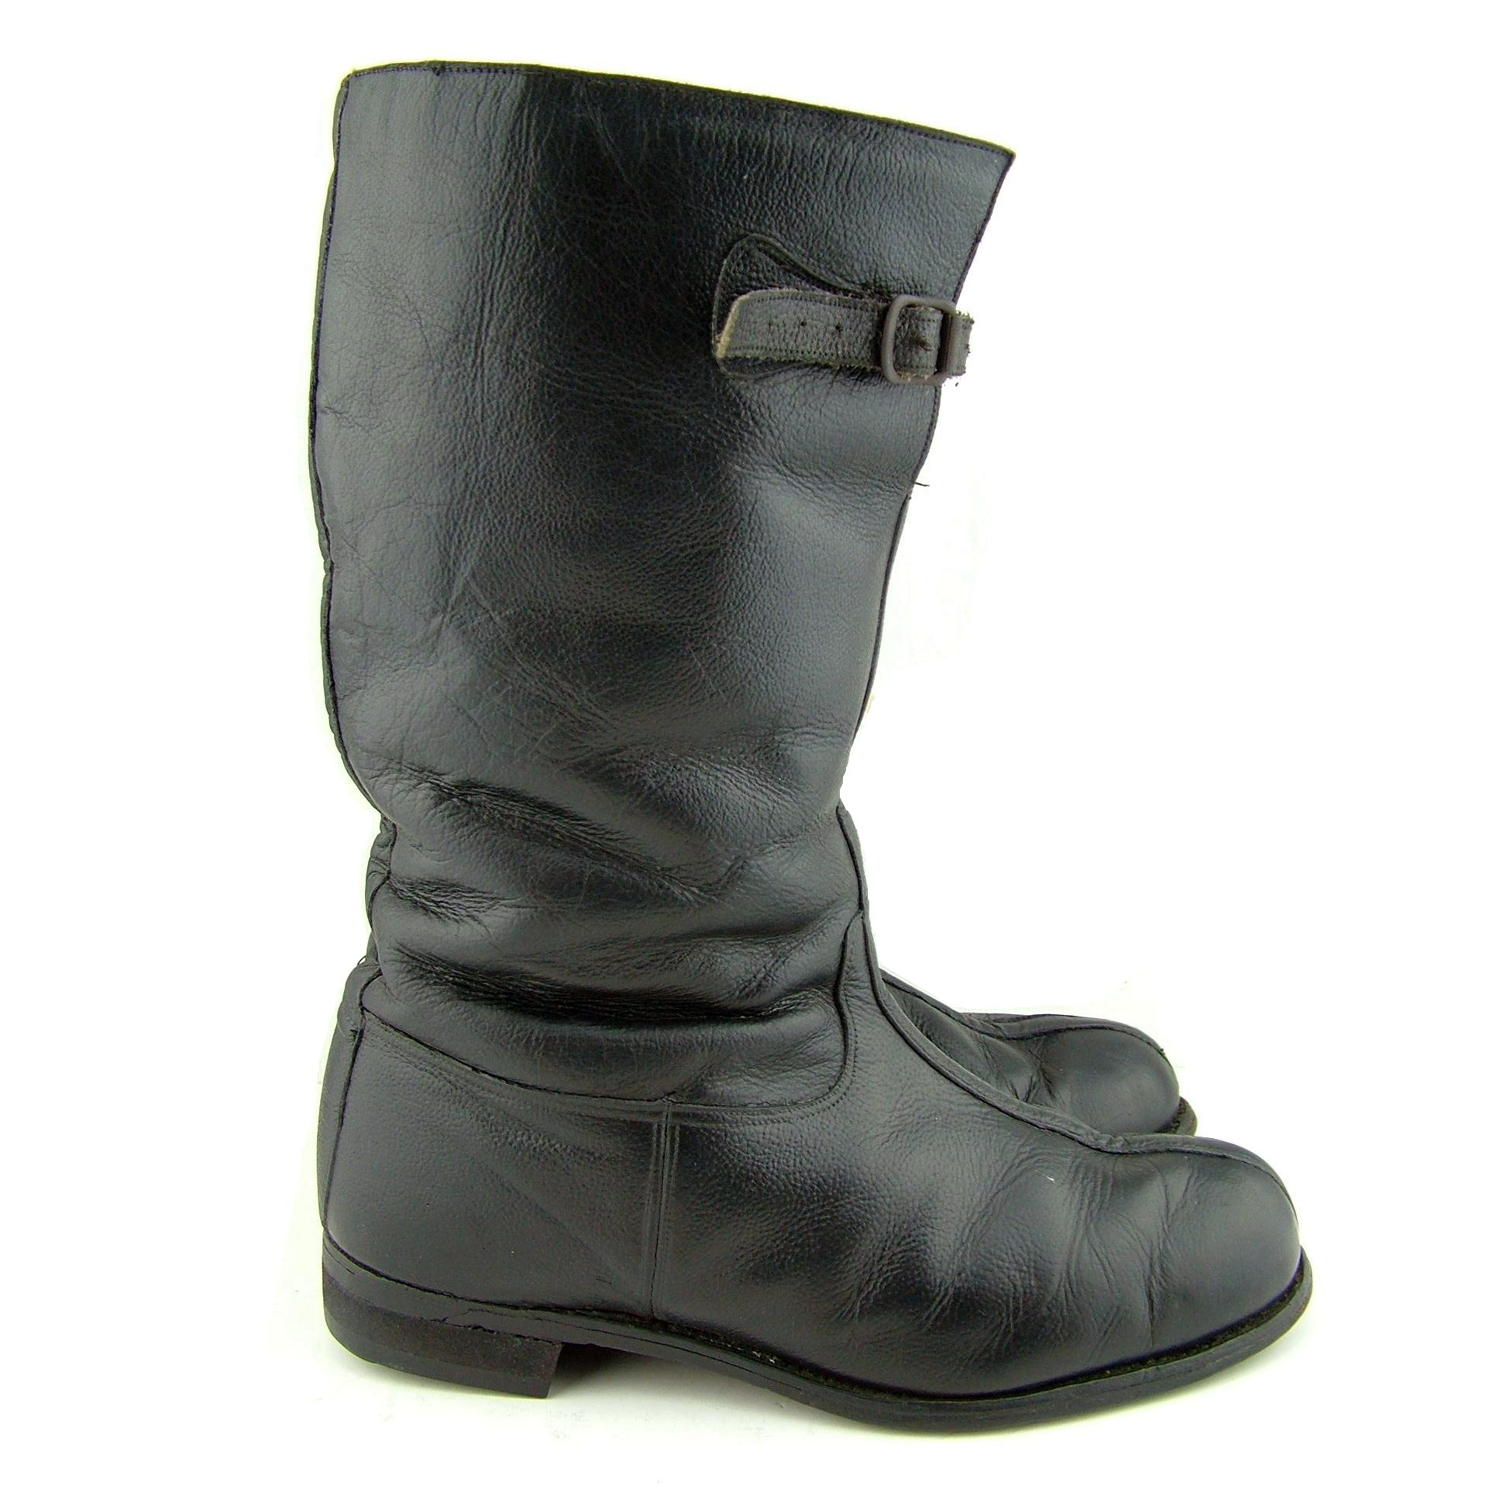 Private purchase 1936 'style' flying boots